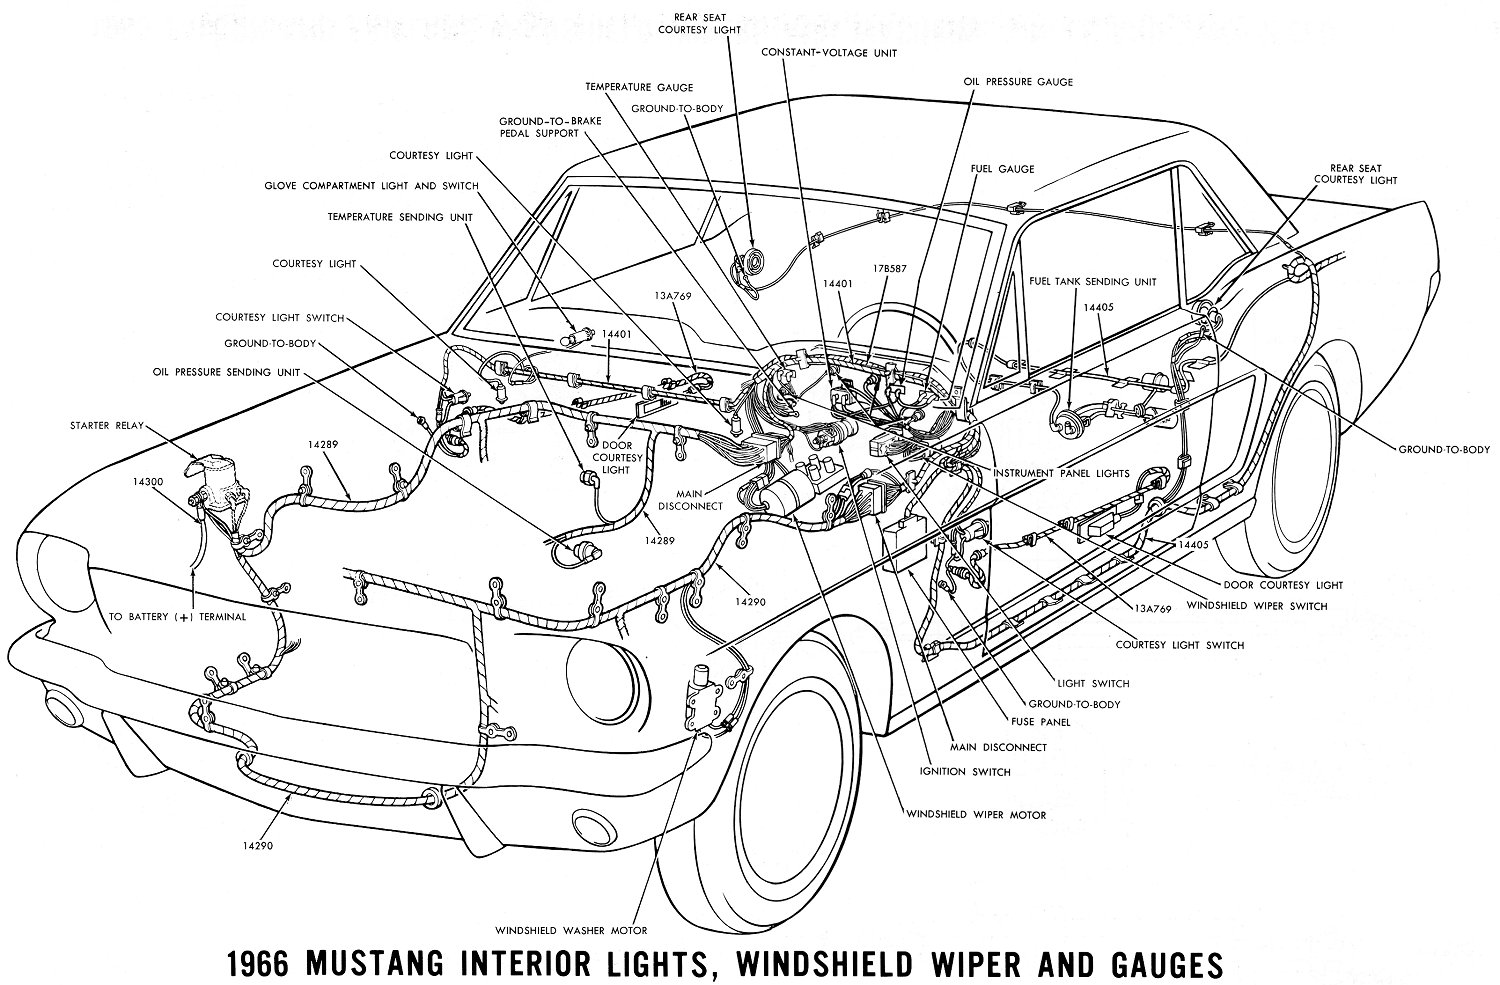 1966 Mustang Wiring Diagrams Average Joe Restoration Oem Wiper Motor Diagram Interior Lights Windshield And Gauges Schematic